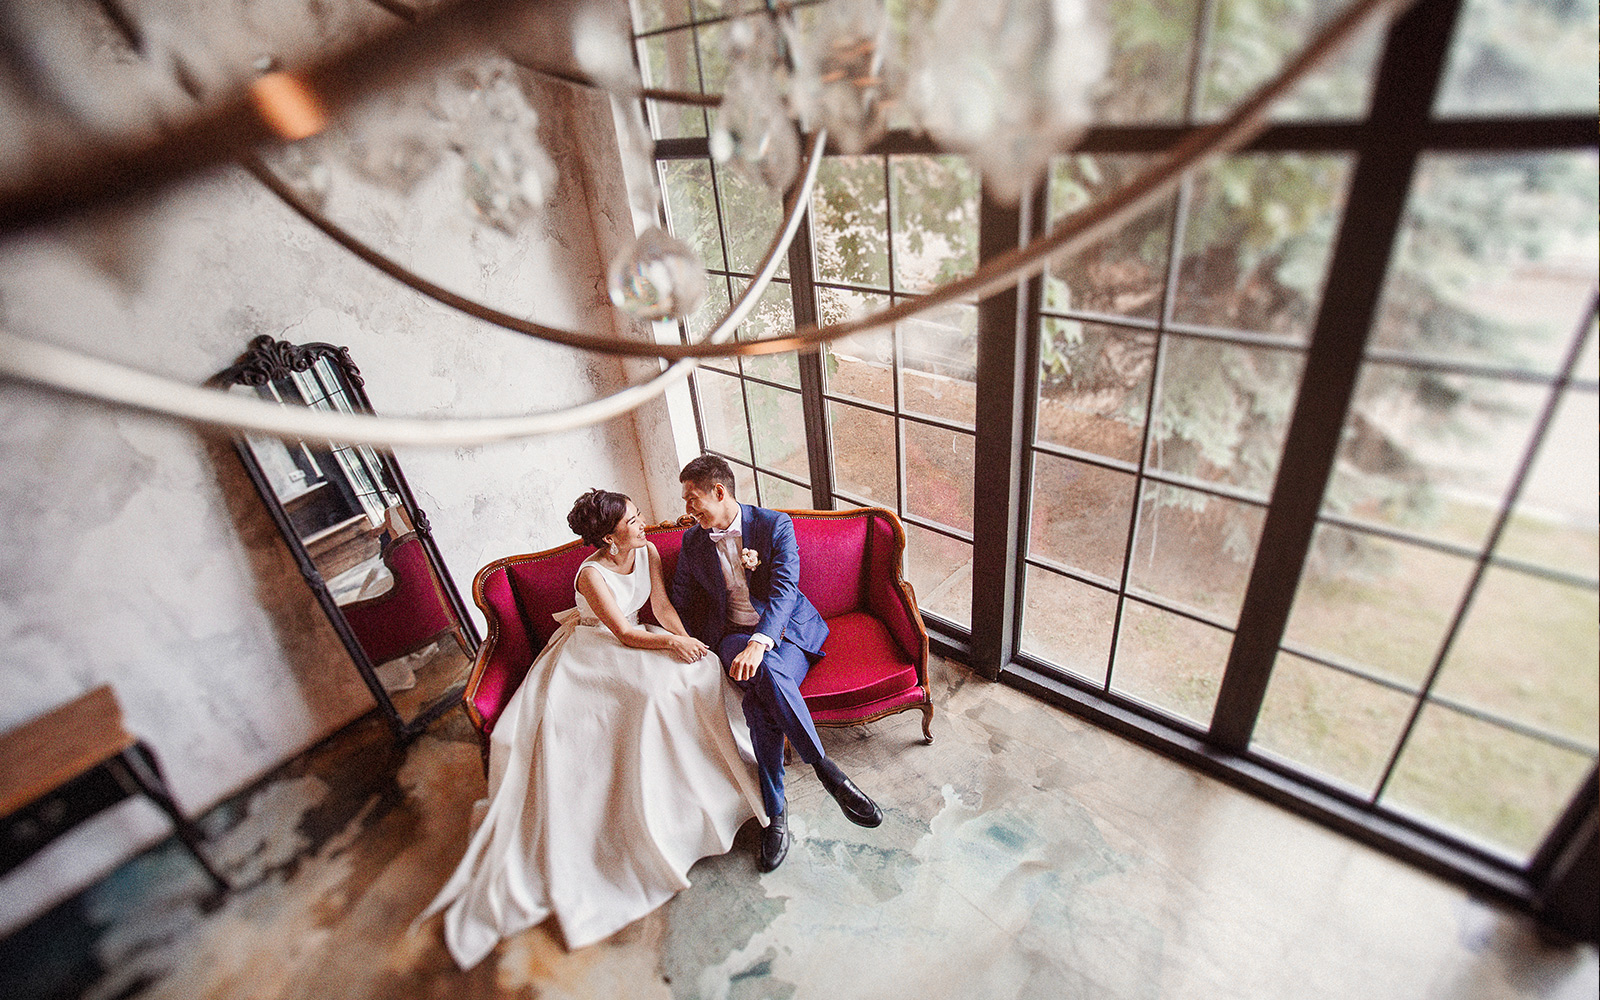 Wedding photographer Shirokov Nikita_6